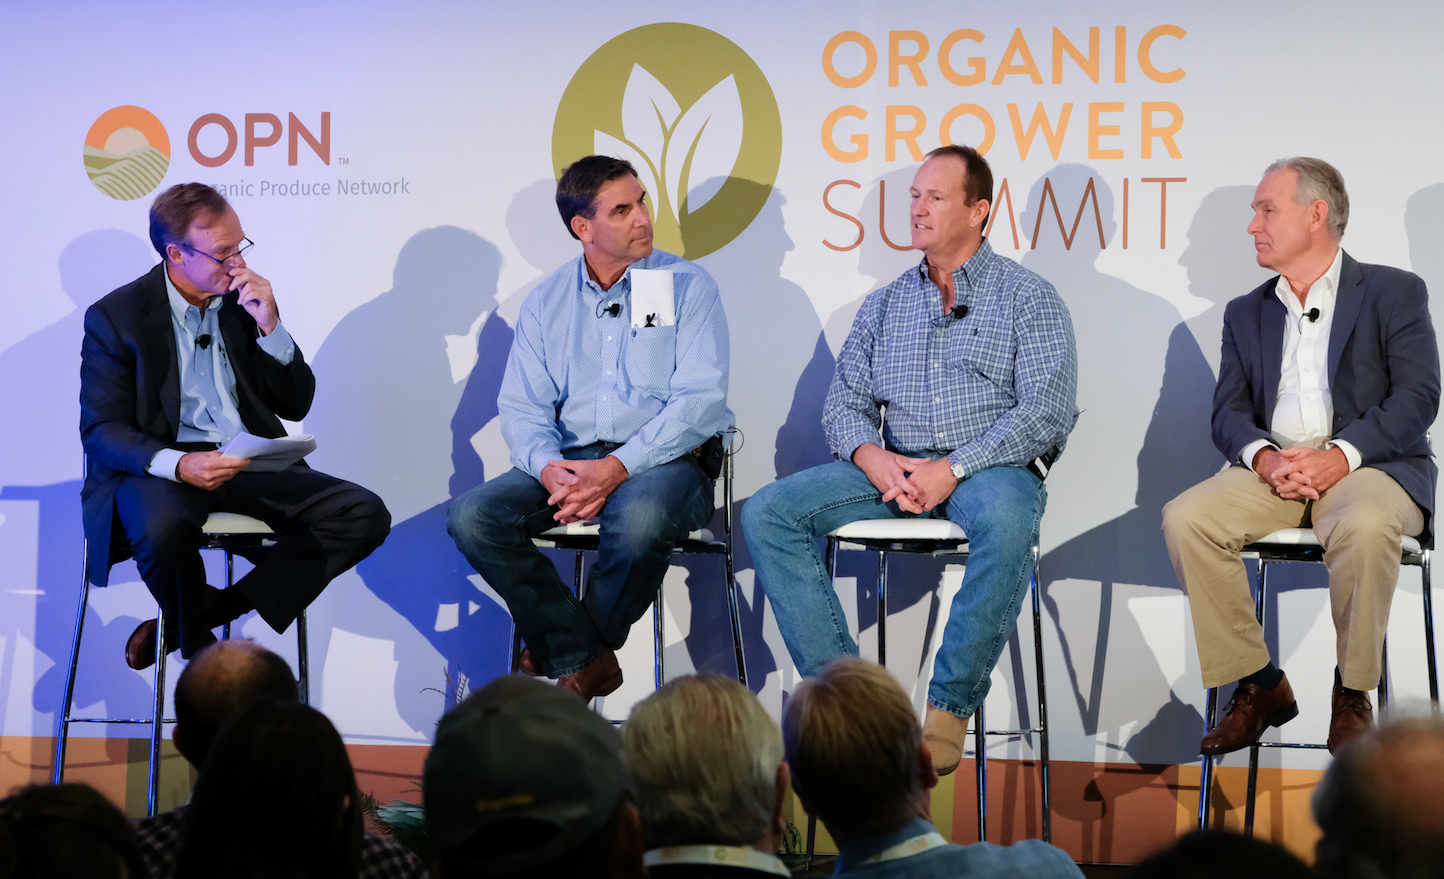 Image 3 - OGS Grower Roundtable (from left to right) - Scott LaRue, Piper Jaffray - Stan Pura, Mission Ranches, Jeff Huckaby - Grimmway Farms, Victor Smith - J.V. Farms